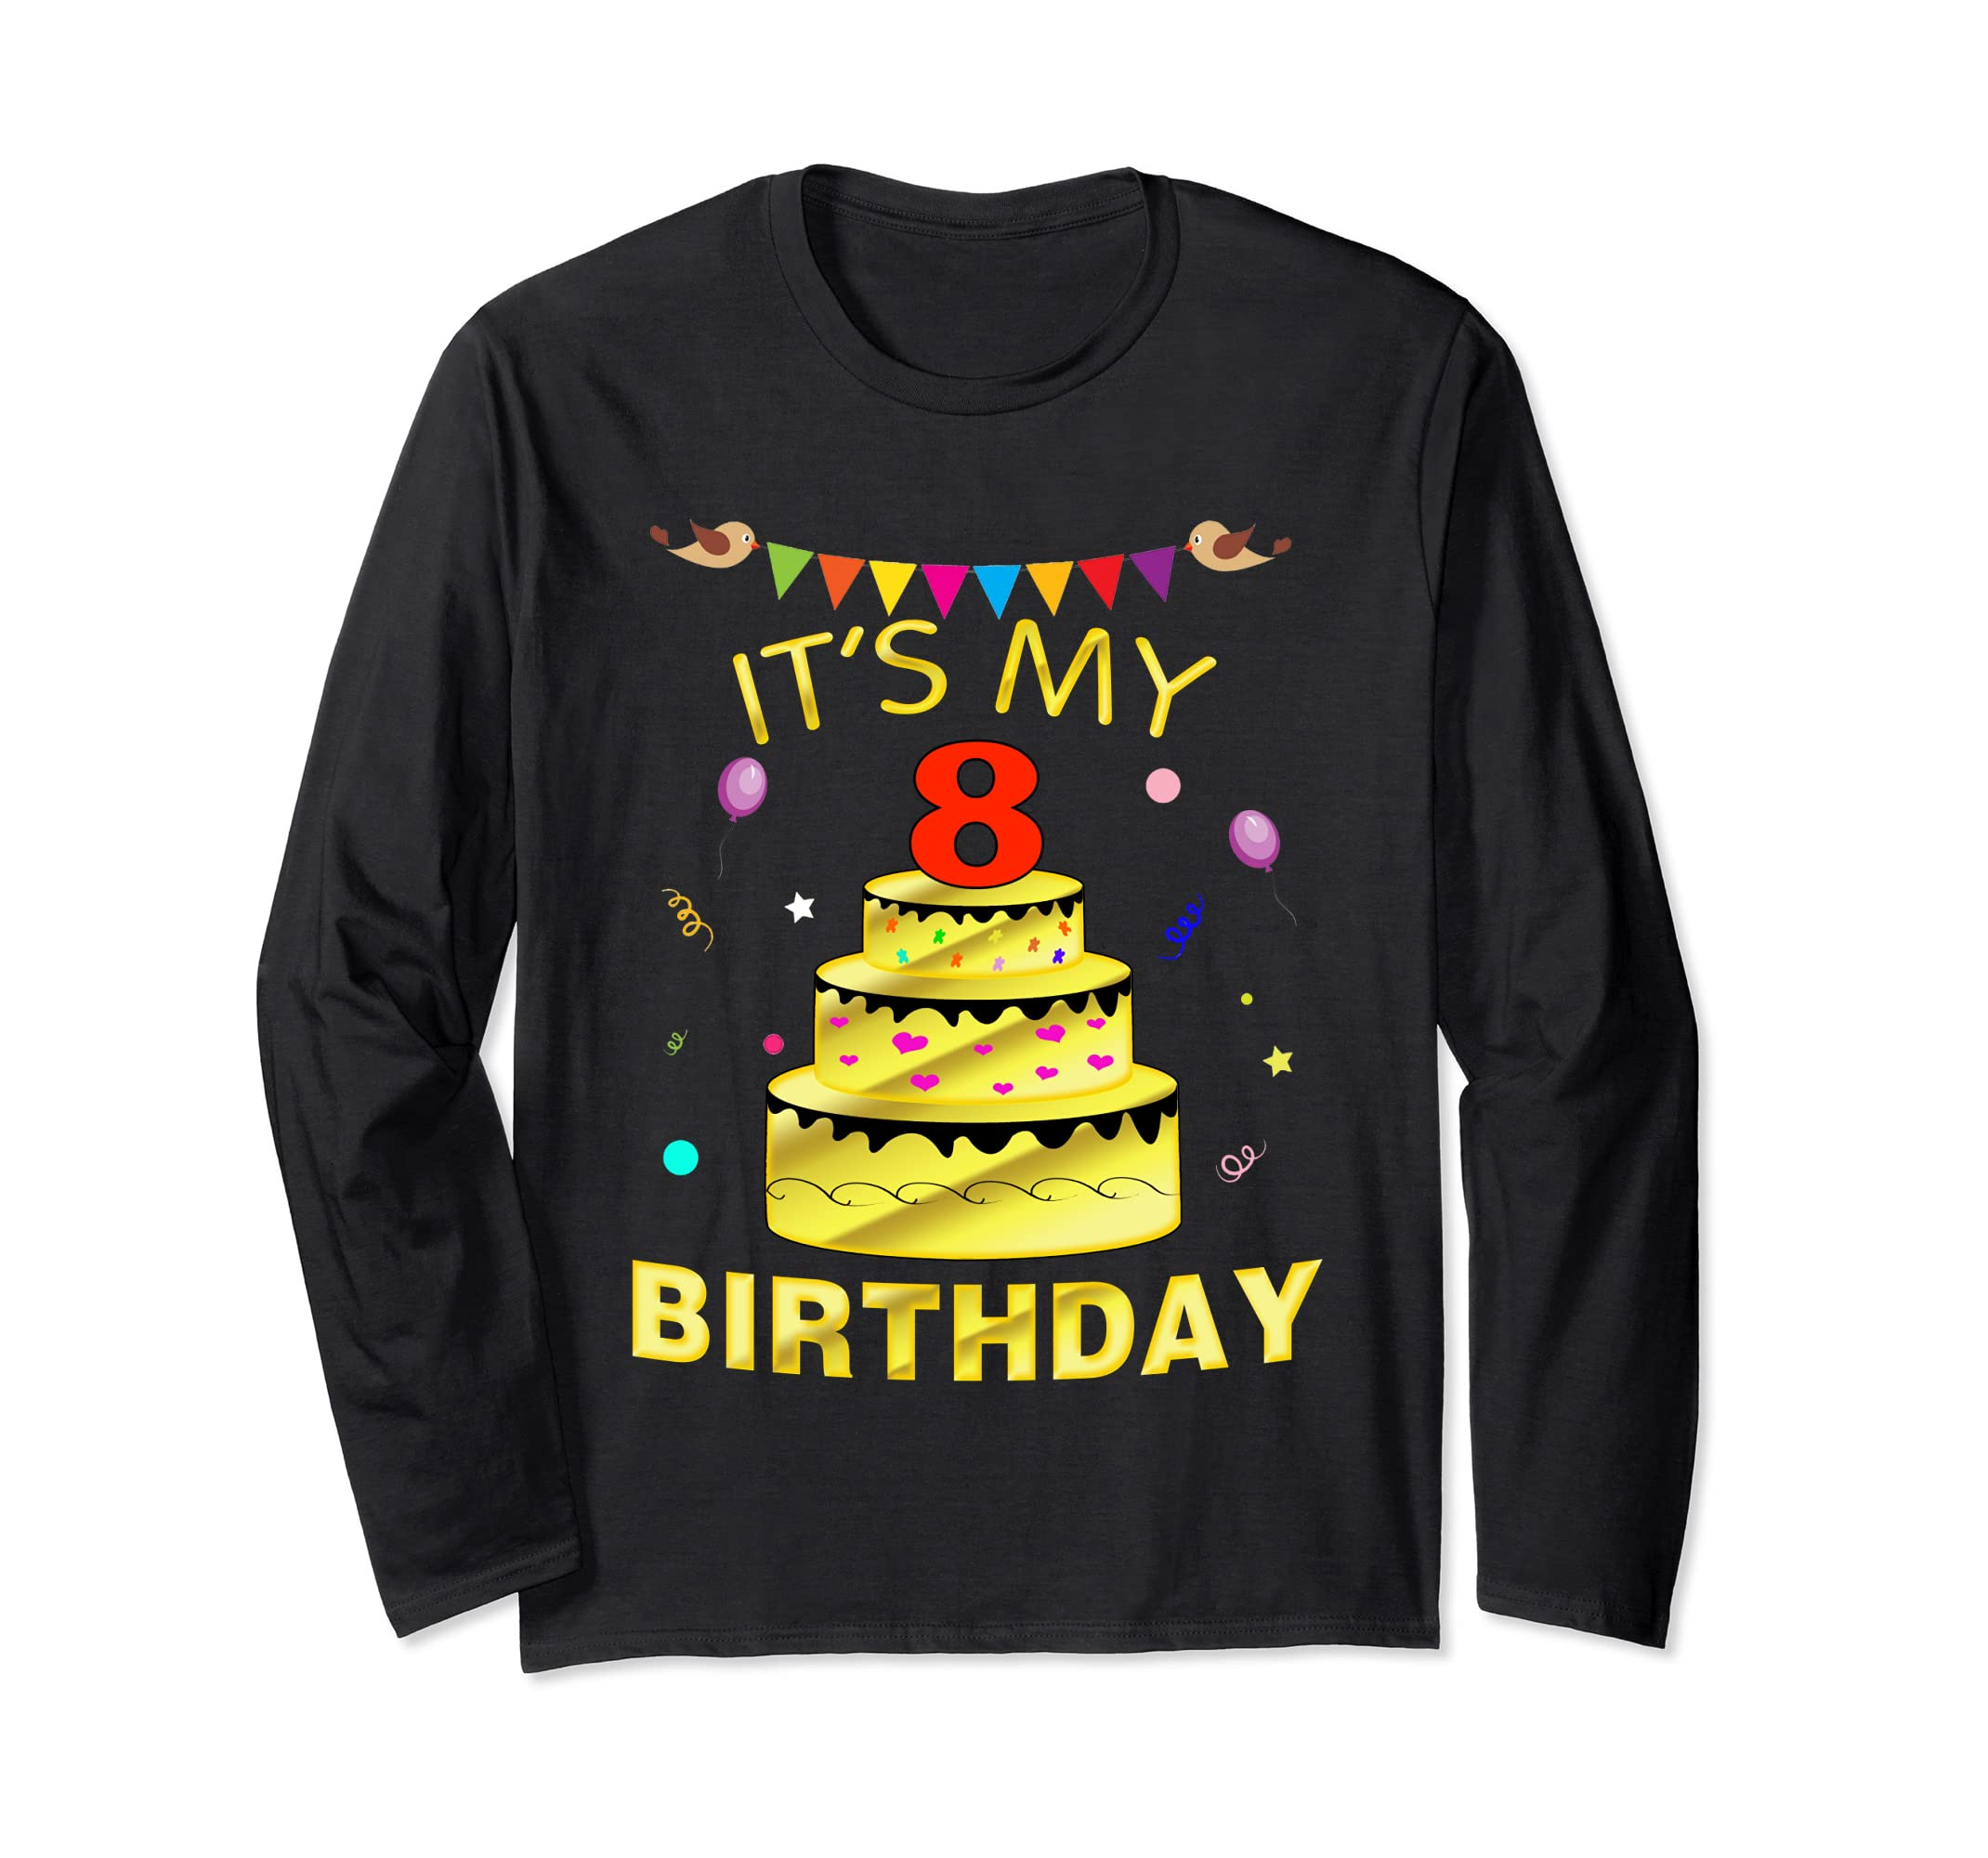 Amazon 8 Years Old Golden Its My 8th Birthday Decorations Shirt Clothing